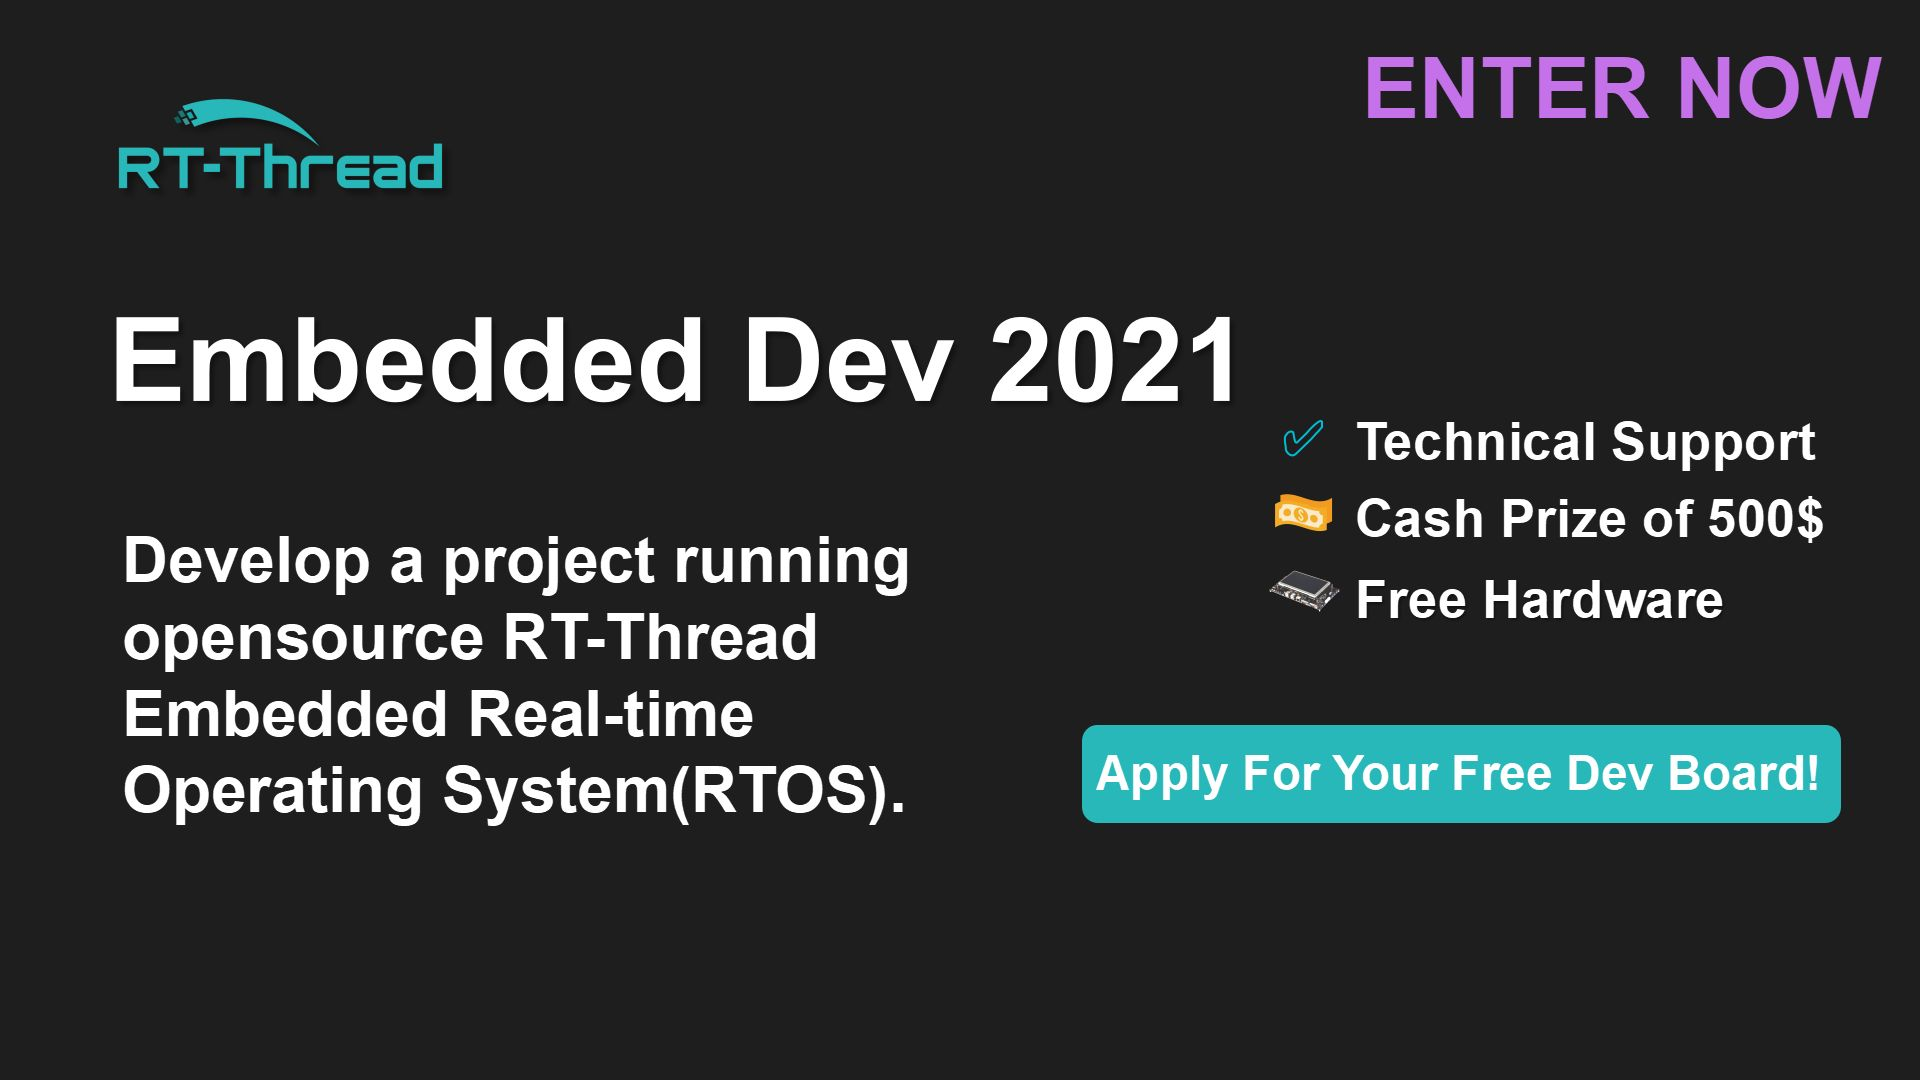 /introducing-embedded-dev-2021-event-4t1j34v8 feature image